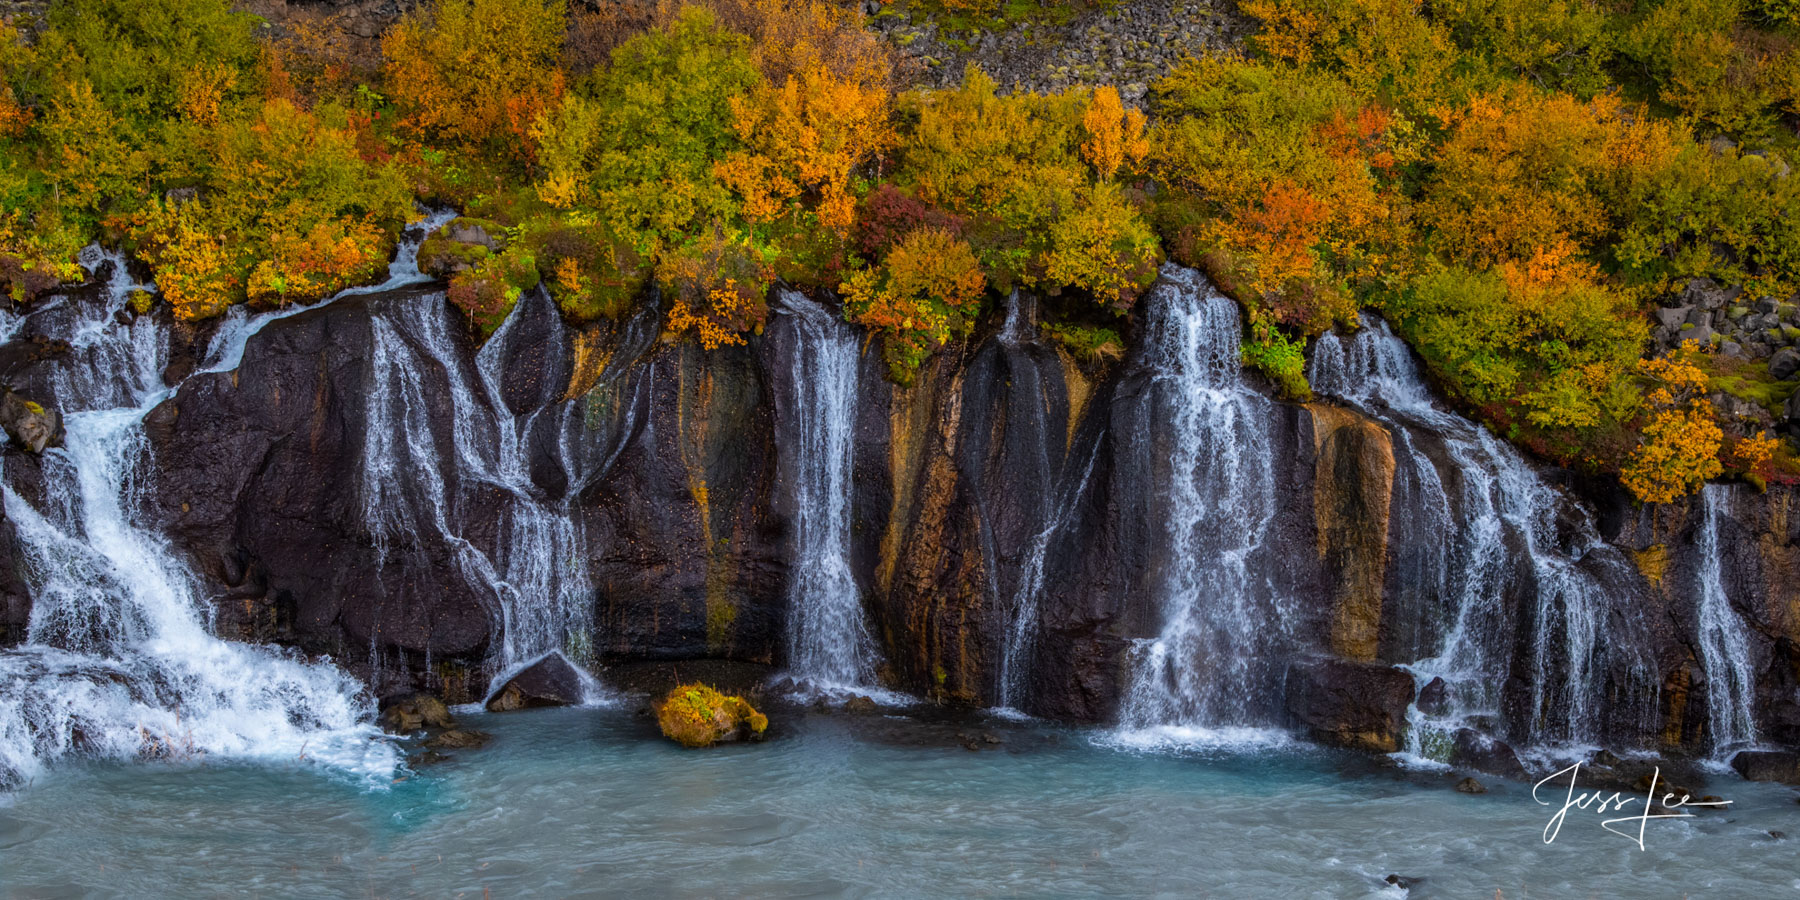 Limited Edition of 50 Exclusive high-resolution Museum Quality Fine Art Prints of Panorama Photography of Iceland waterfalls ....